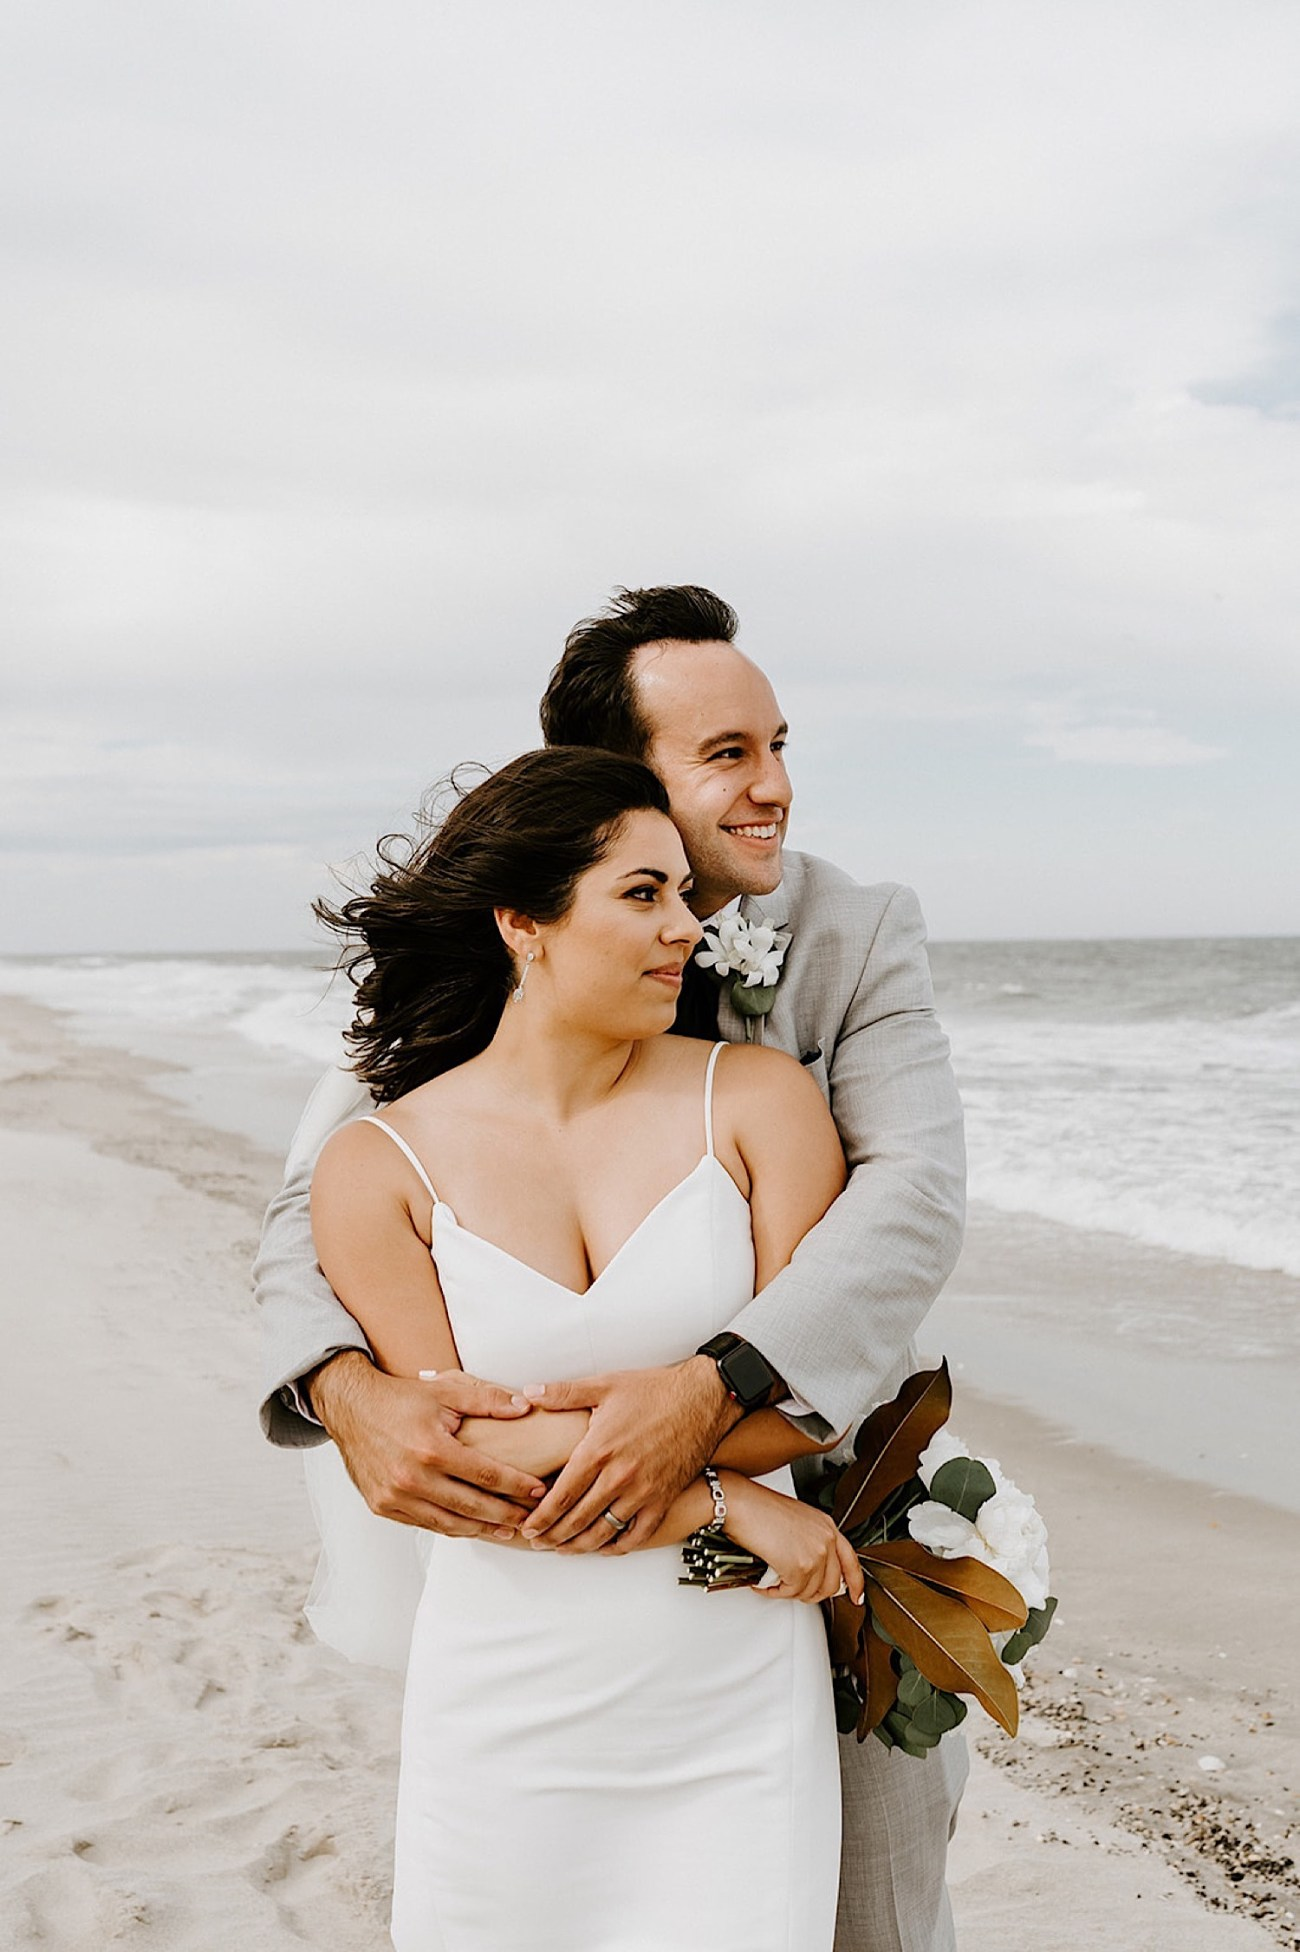 132 Sea Bright Wedding Beach Wedding Photos New Jersey Shore Wedding Nj Wedding Photographer Beach Elopement Photos